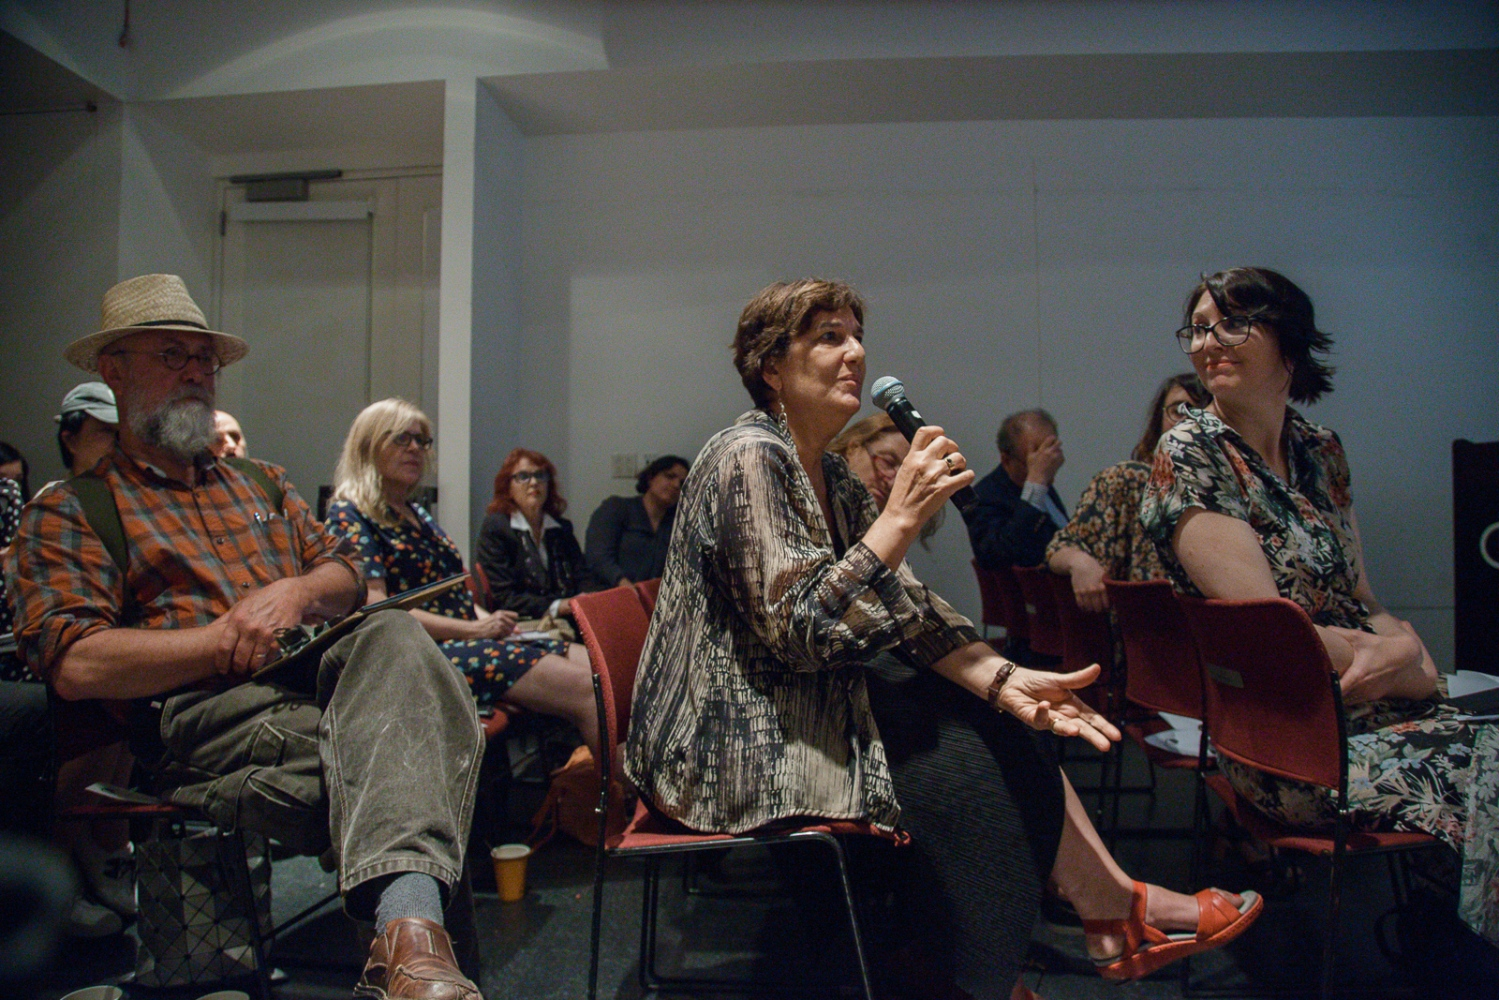 "June 21, 2017 - International Center of Photography School. New York City, NY, USA - Foreground: (Left to right)  Larry Towell, Magnum Photographer, Carole Naggar, editor and curator, and Shannon Ghannam; Global Education Manager of Magnum Photos during the ""Magnum Photos Now- Photobooks: History, Future, Form"" event."